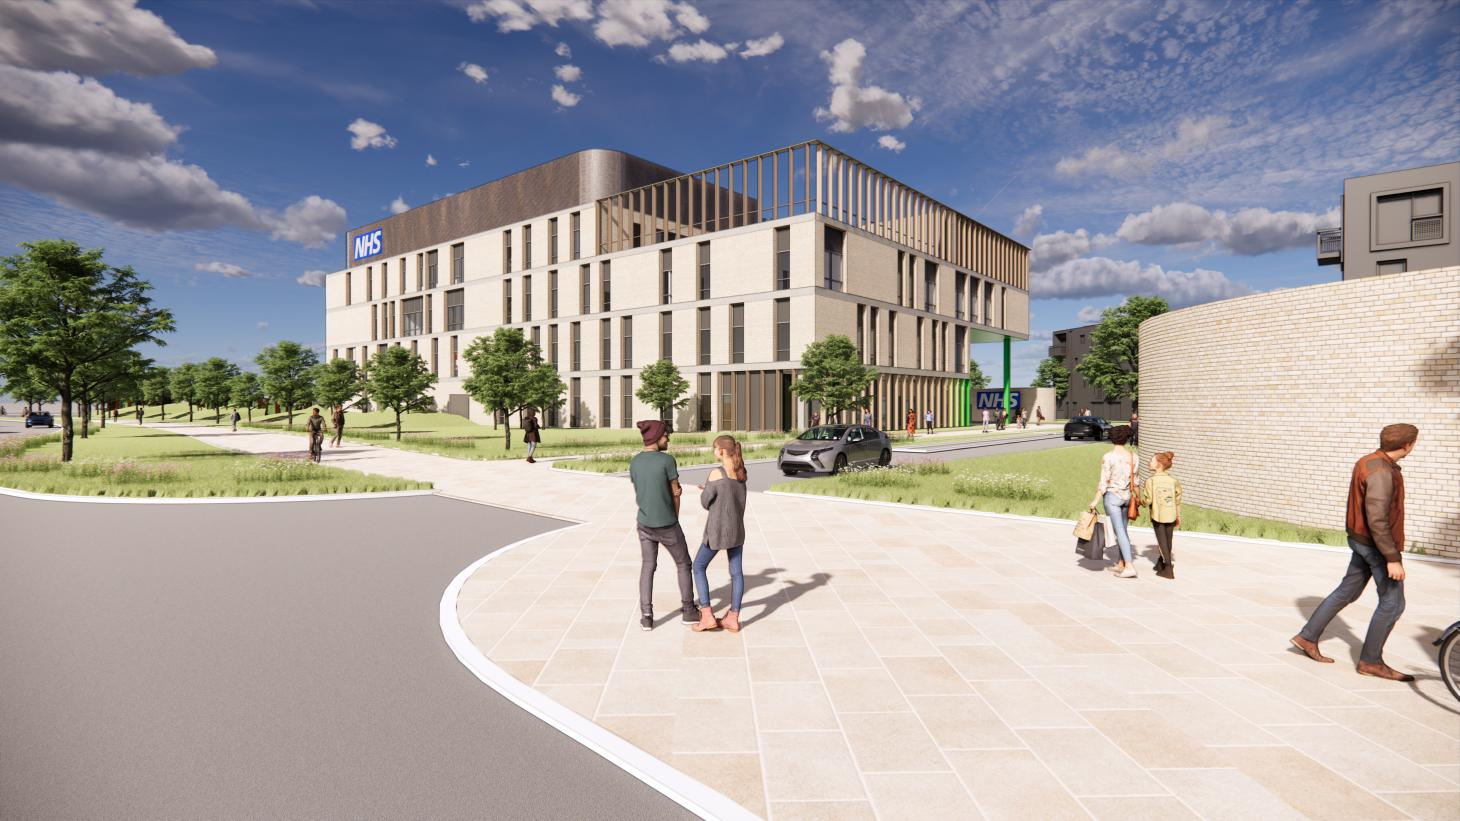 An artist's impression of how the new eye hospital would look once it is built